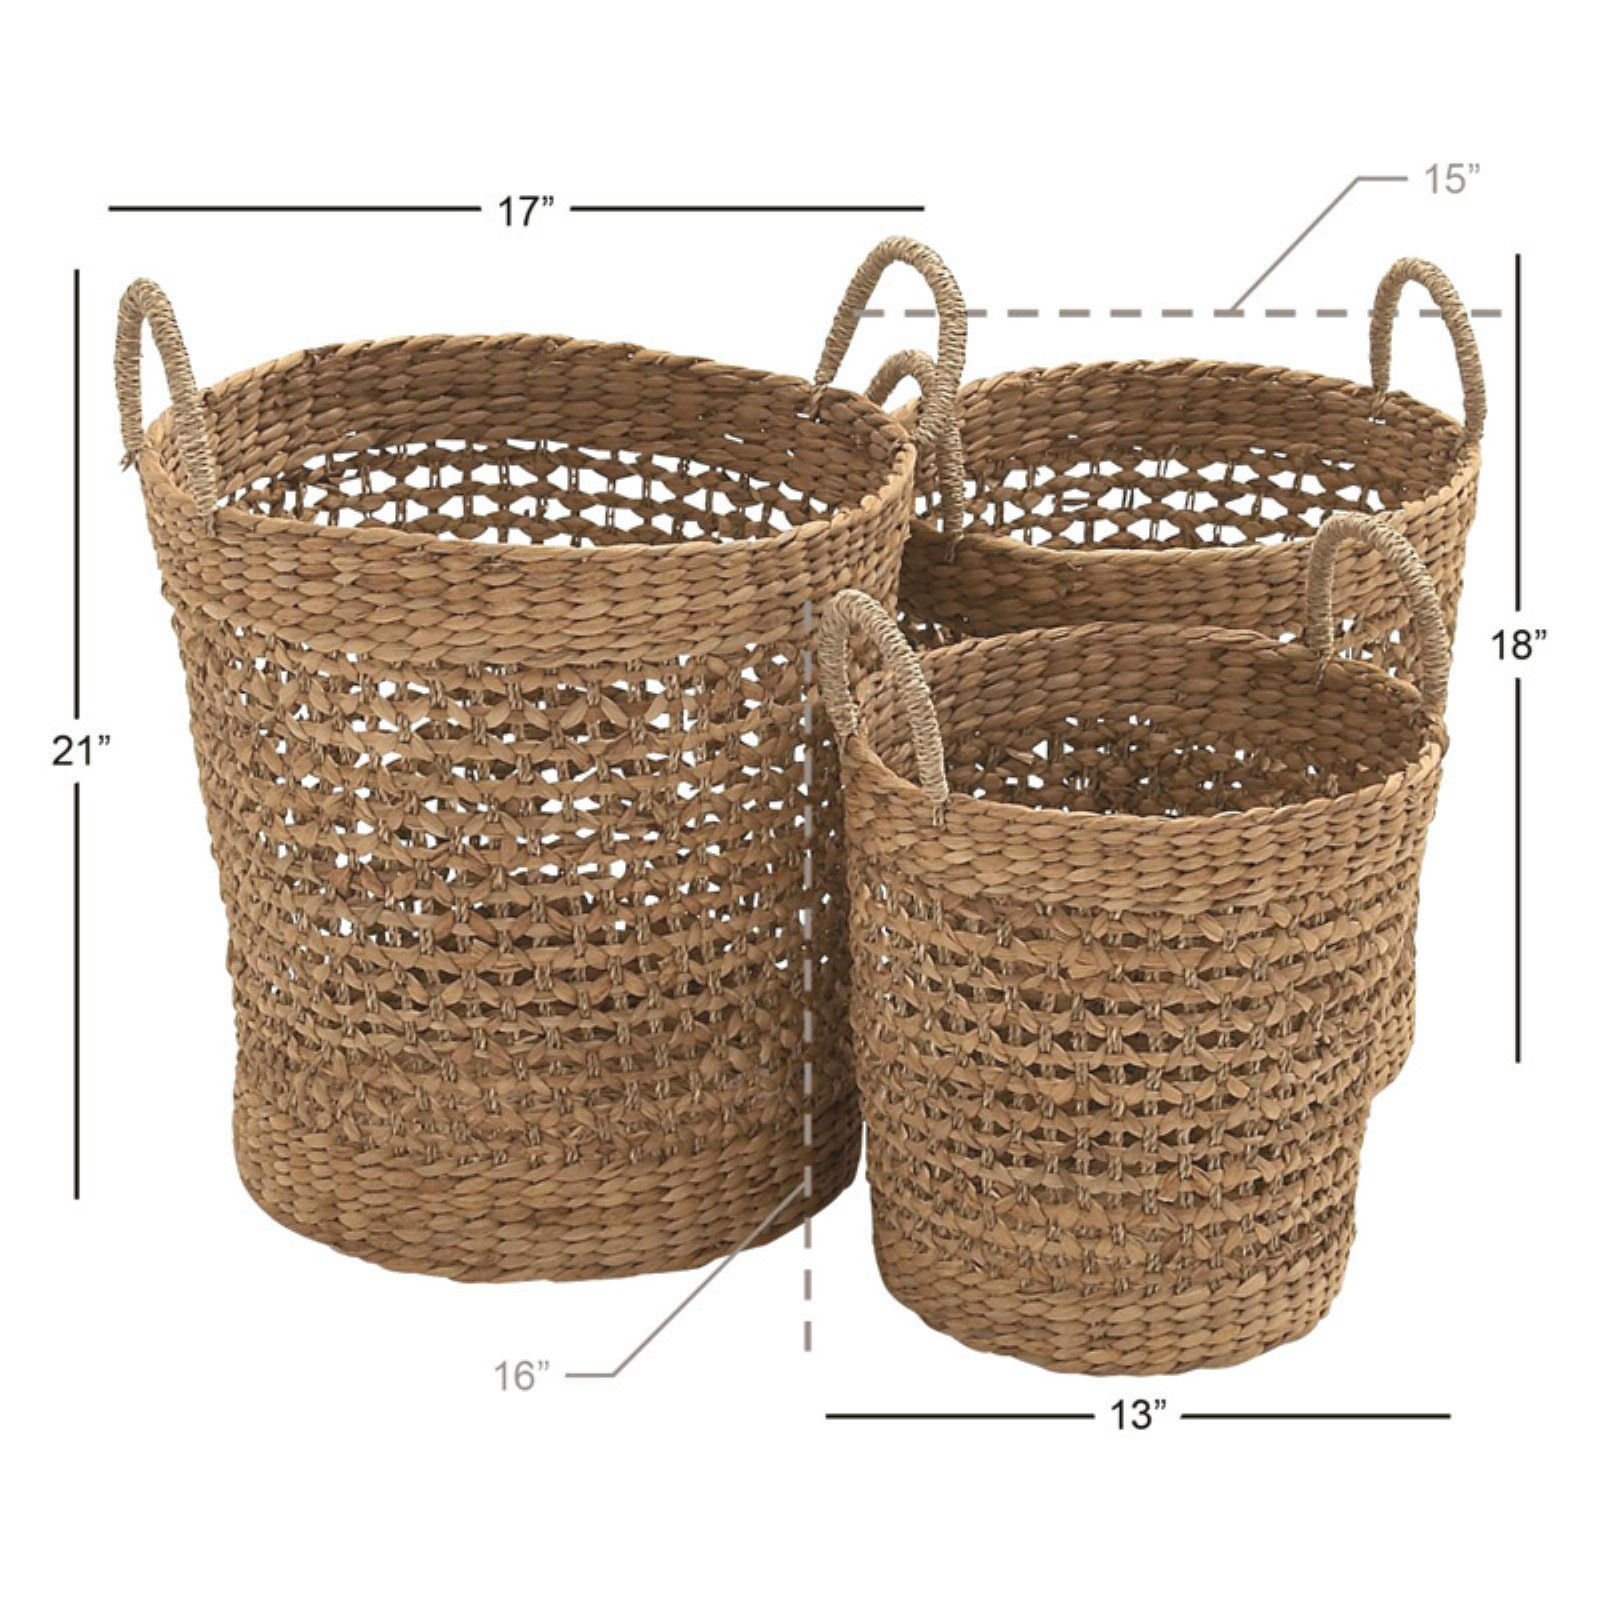 Create Gift Food //Chocolate Set Make Your Own Round Seagrass Gift Basket Kit